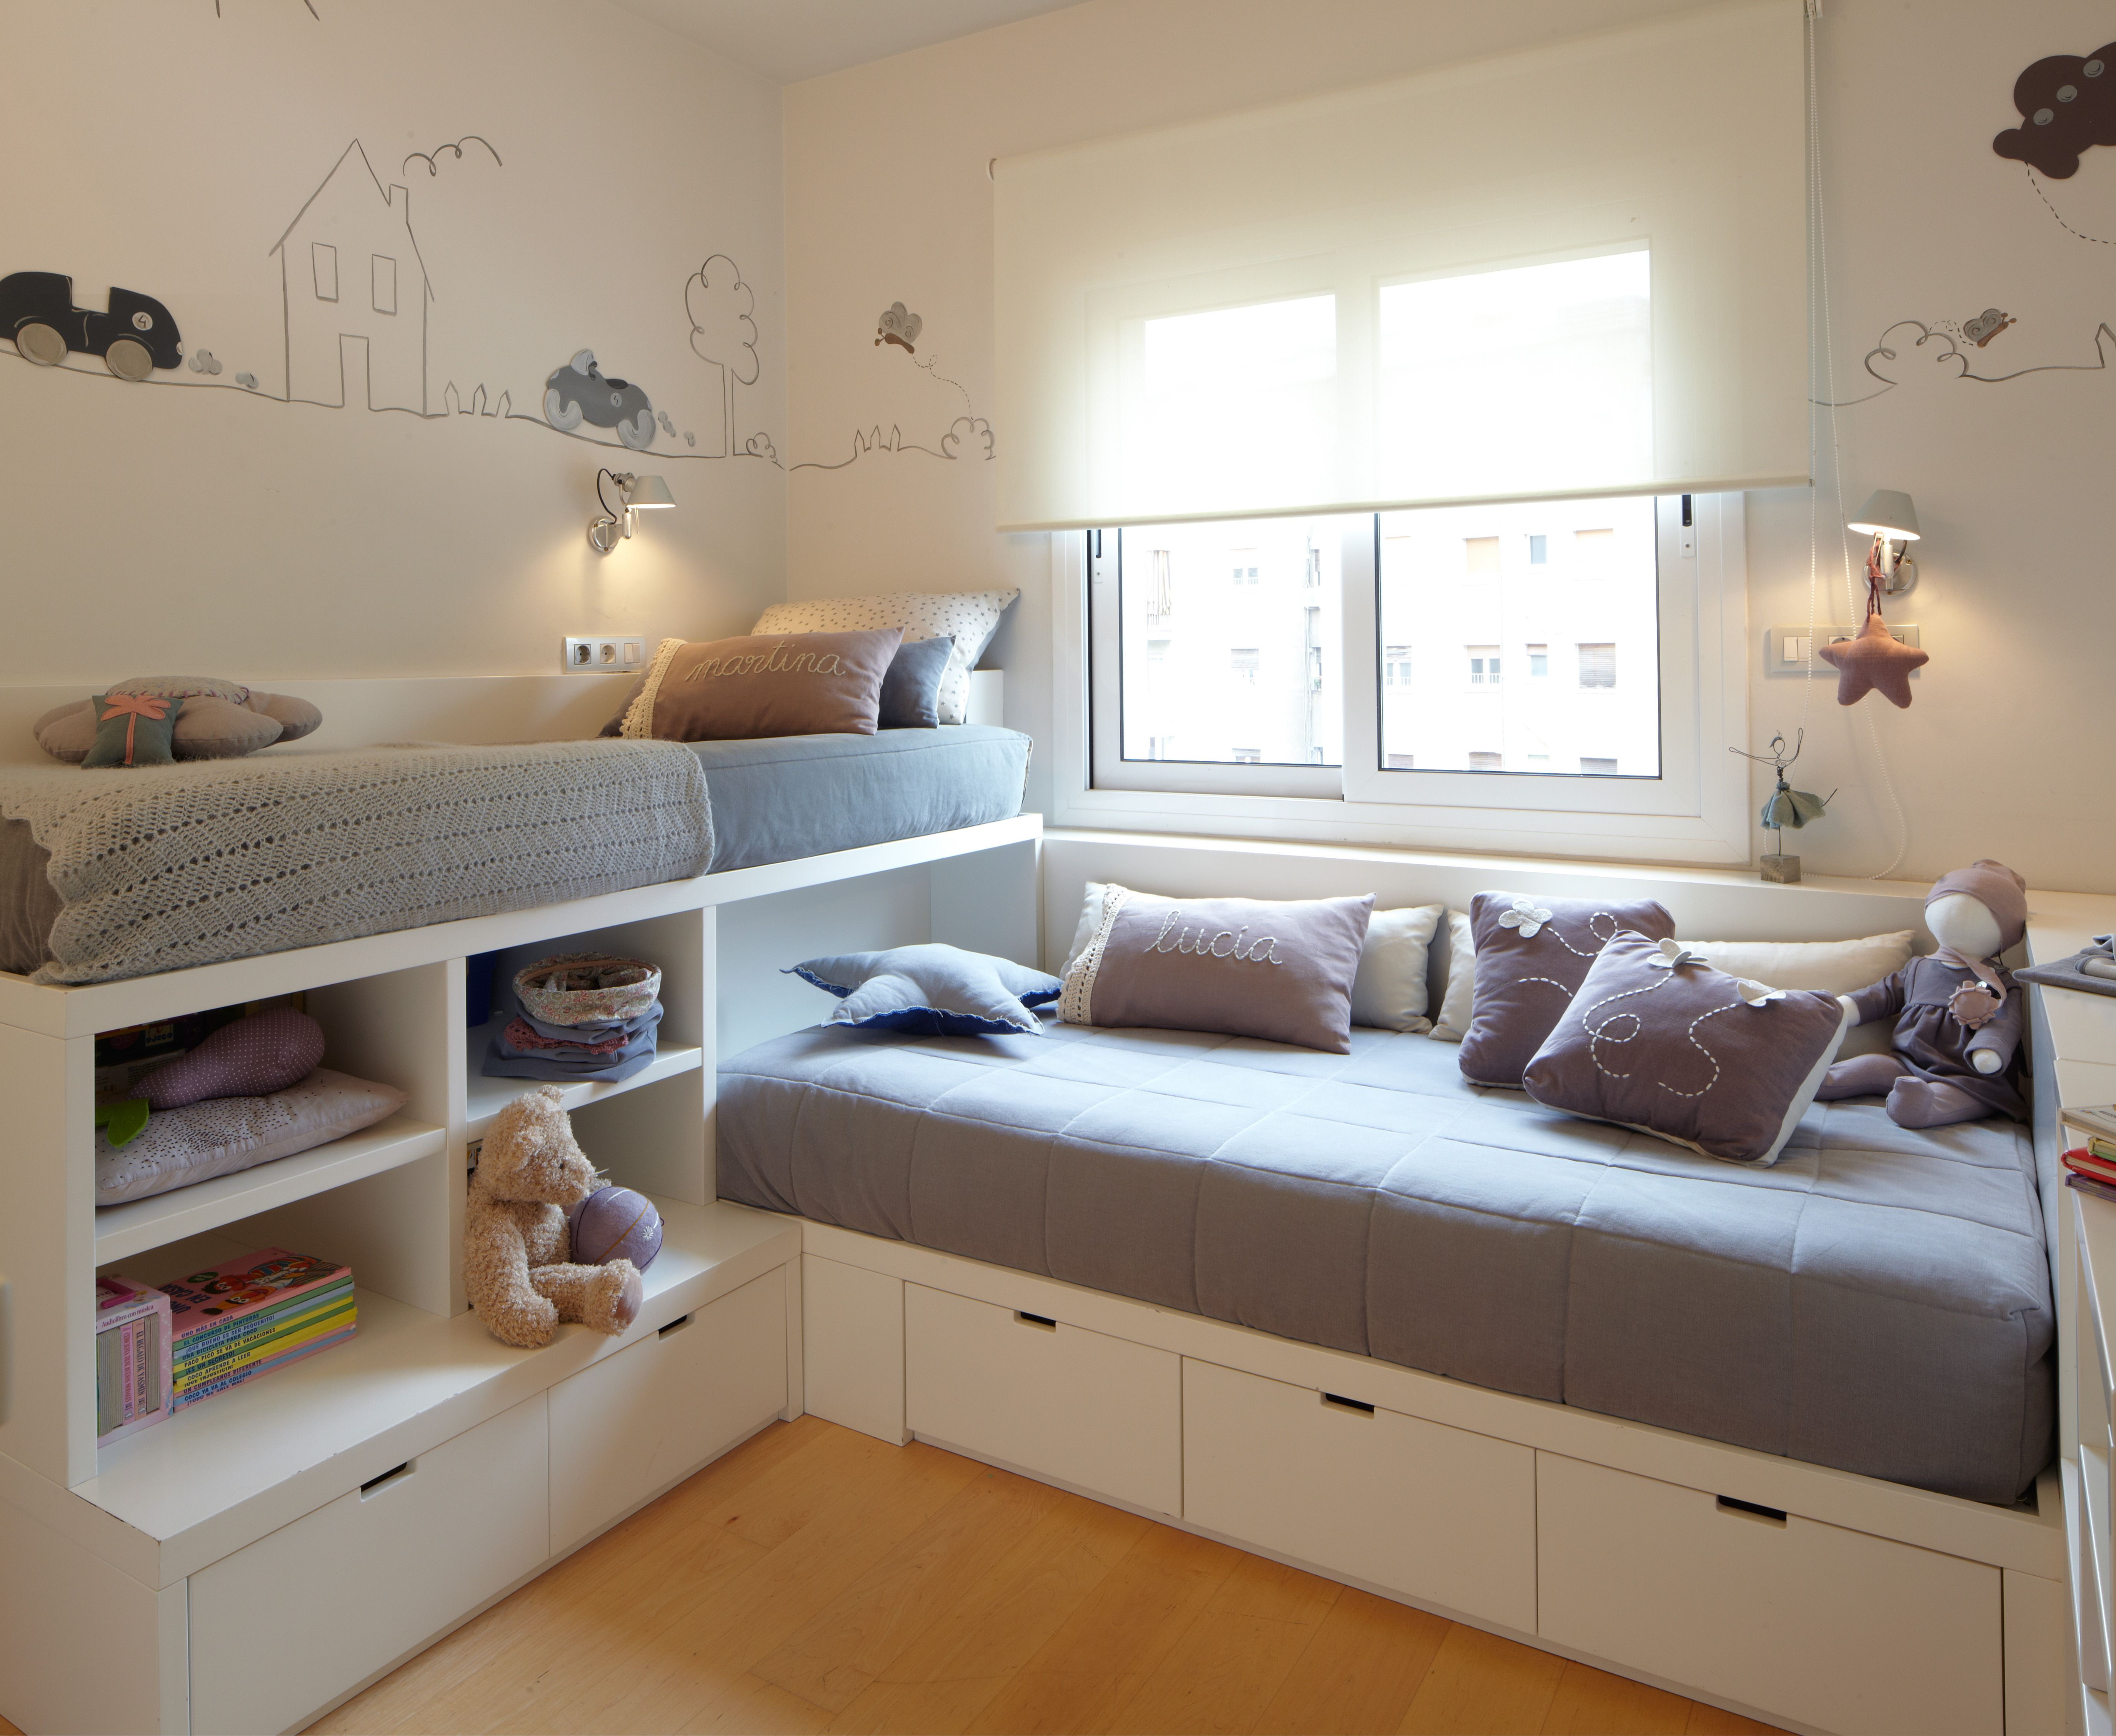 Built in loft bed ideas  dijous  Toys  Pinterest  Kids rooms Room and Bedrooms